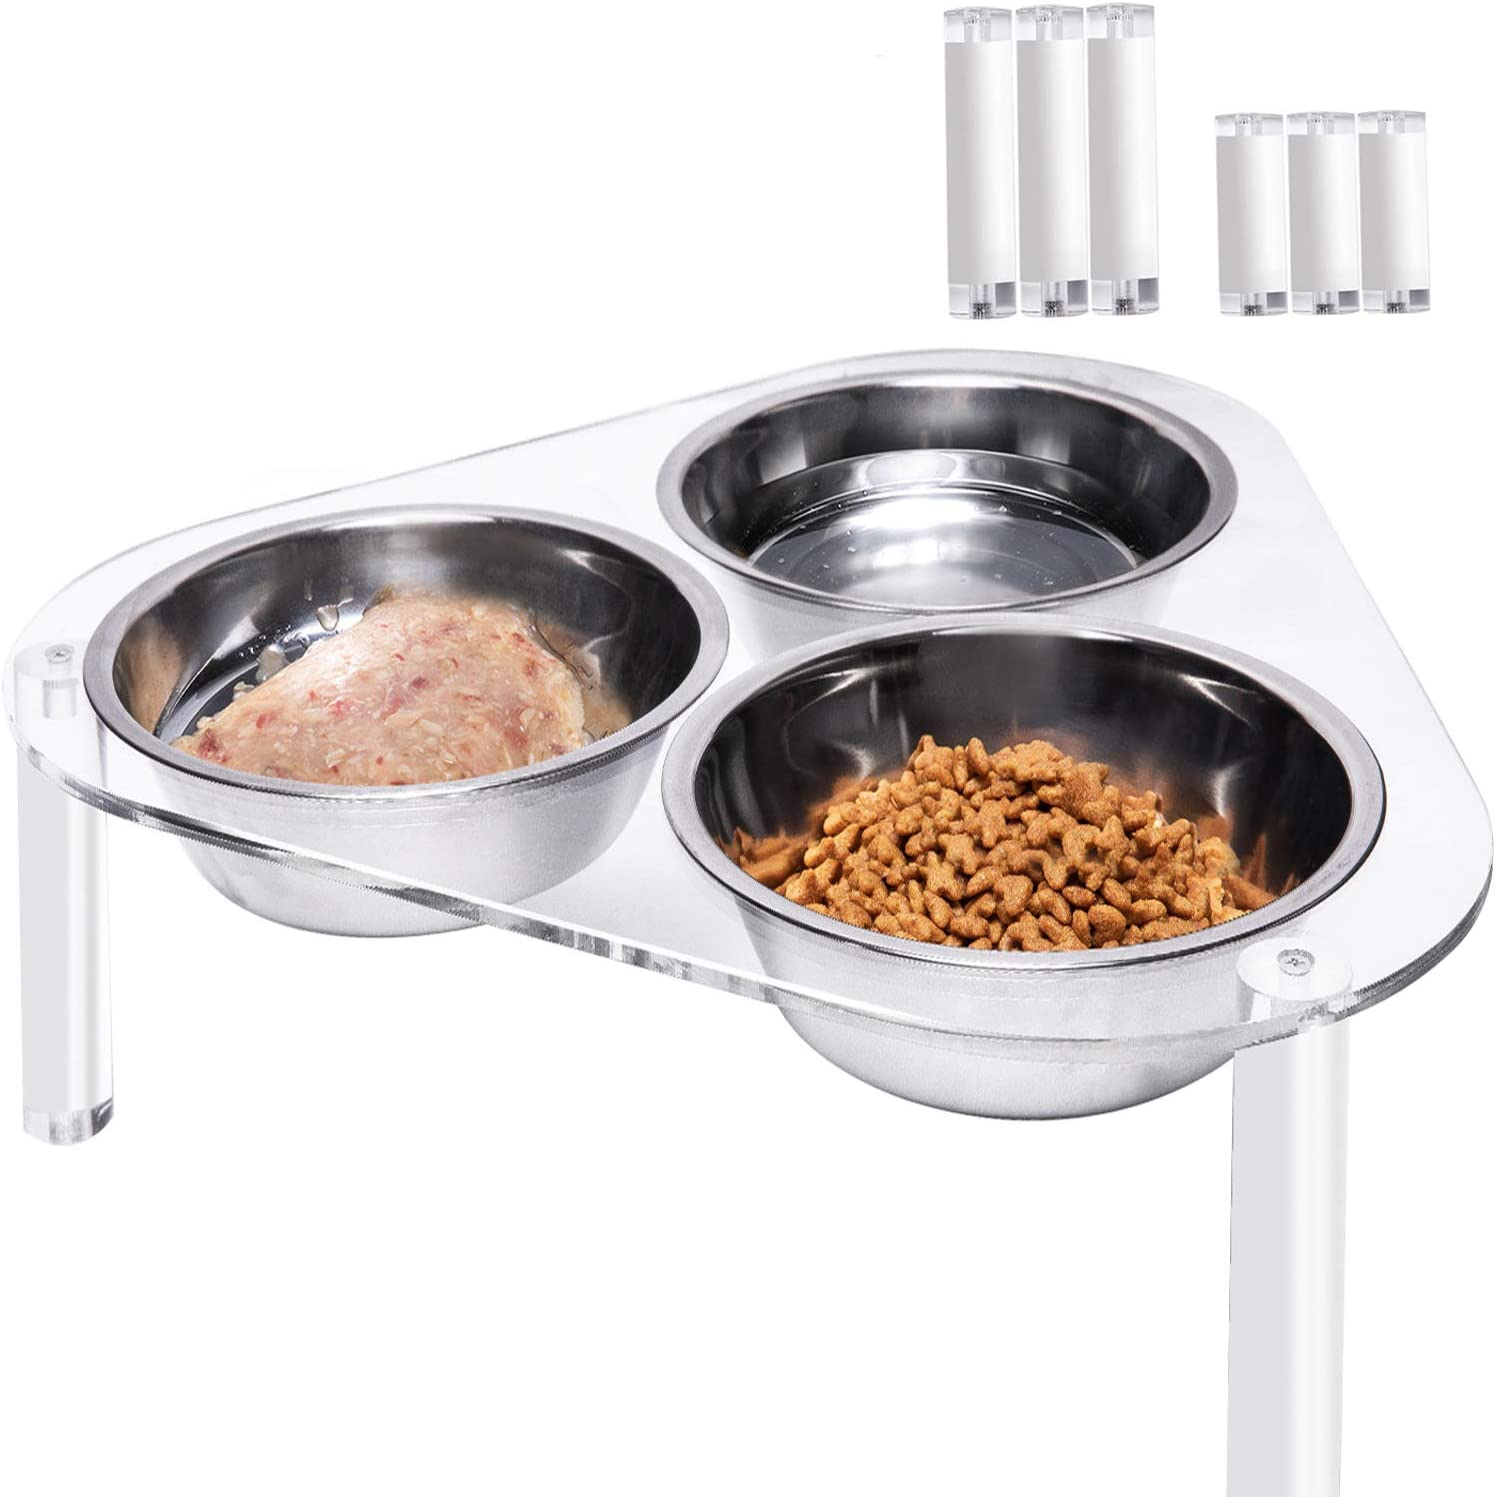 Dubulle Raised Cat Bowls Elevated Adjustable for 3 Pets with Acrylic Stand 3 Stainless Steel Bowls